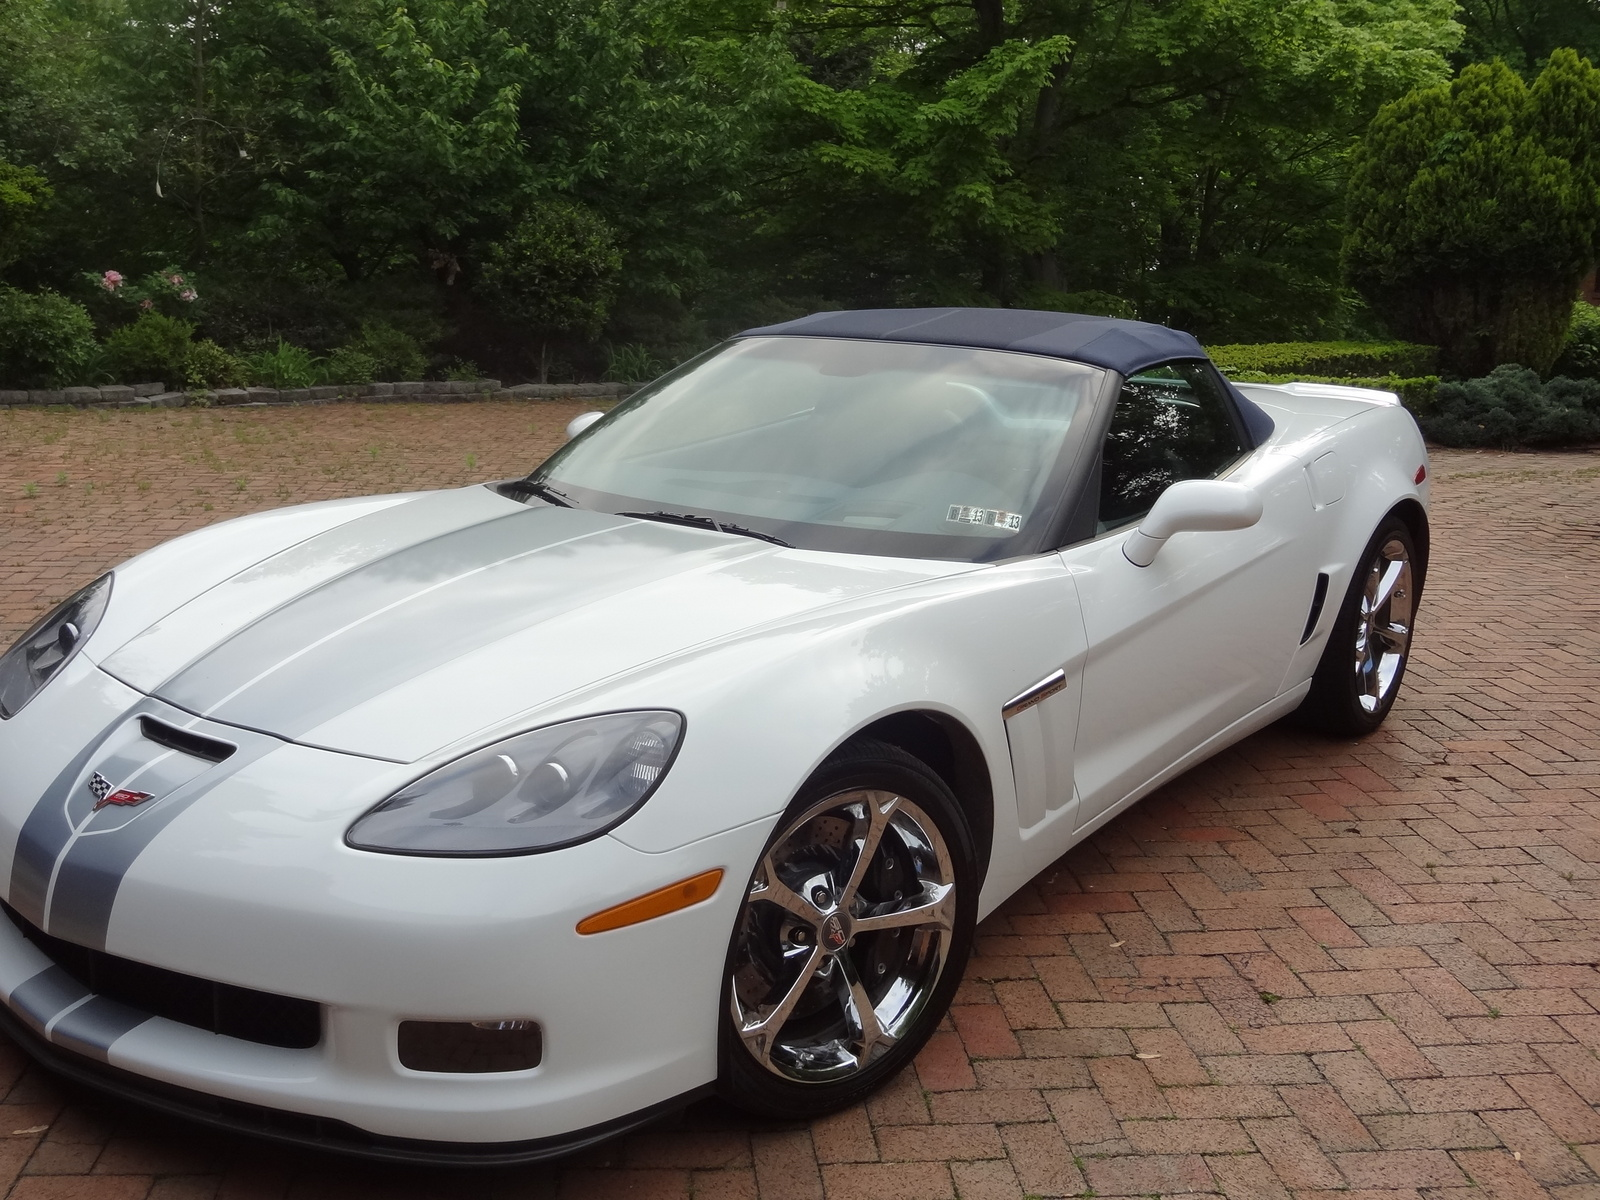 2013 chevrolet corvette grand sport 2dr convertible html. Black Bedroom Furniture Sets. Home Design Ideas